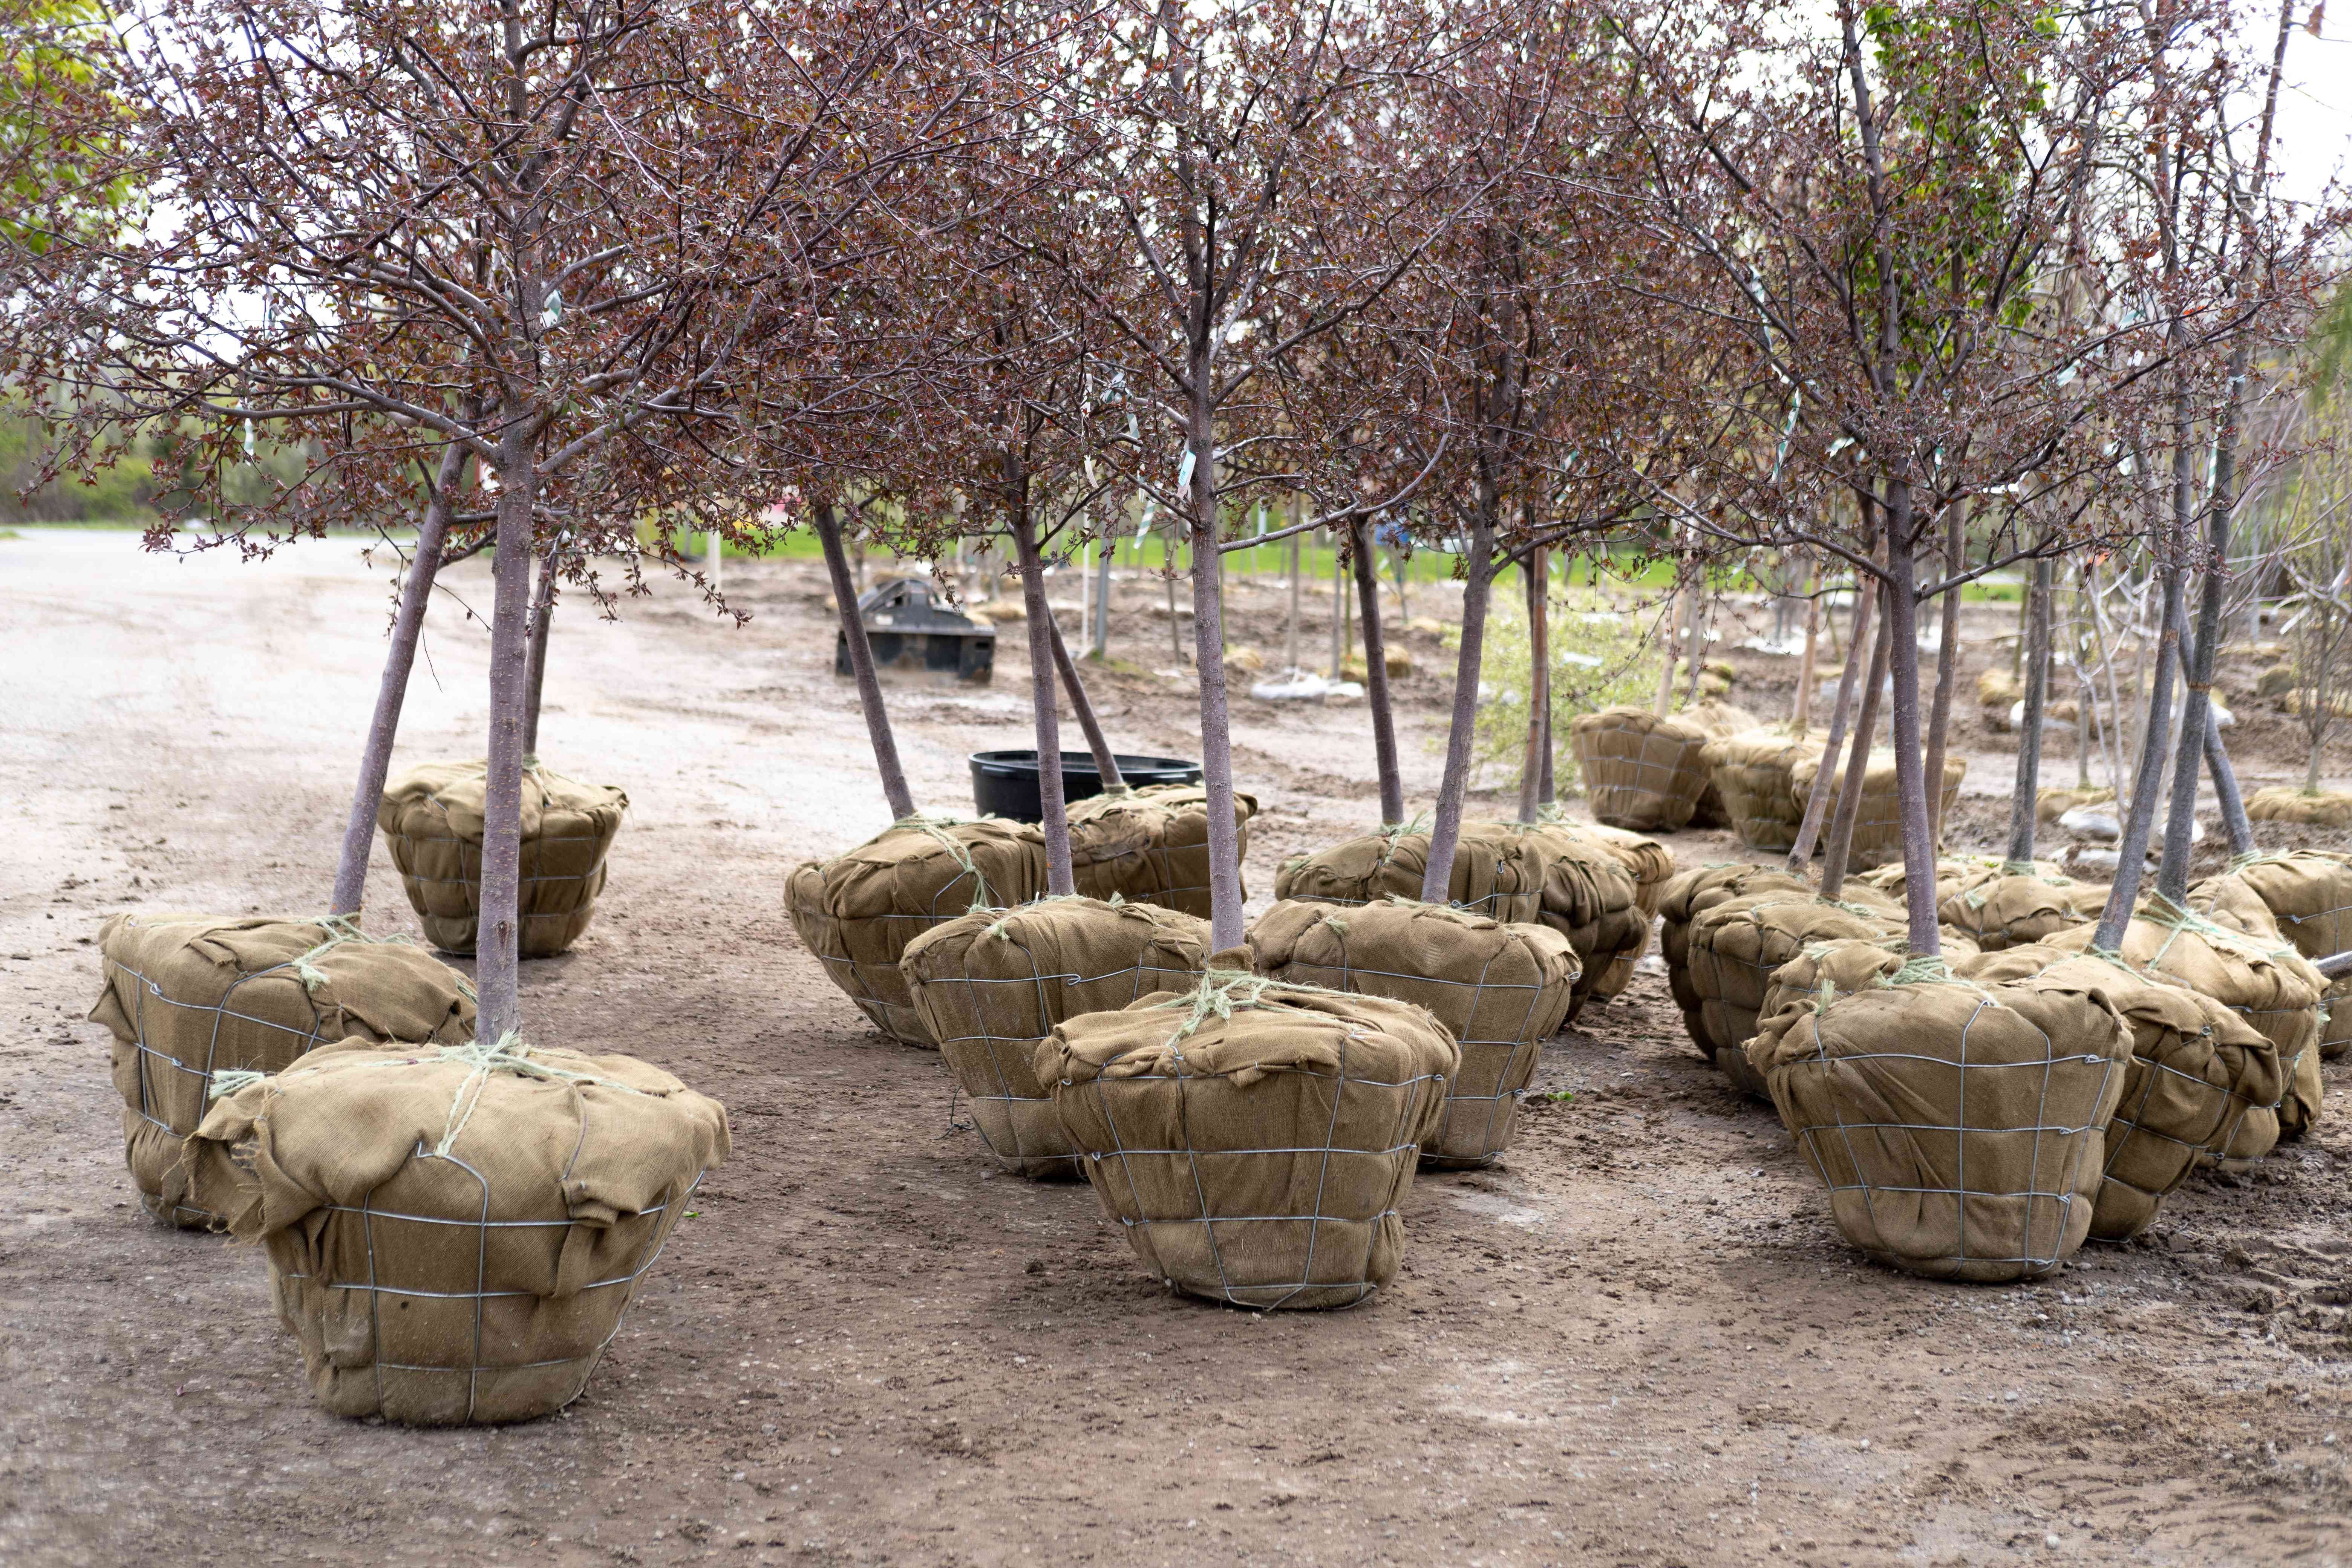 group of young trees in portable root bags ready for transplant / planting